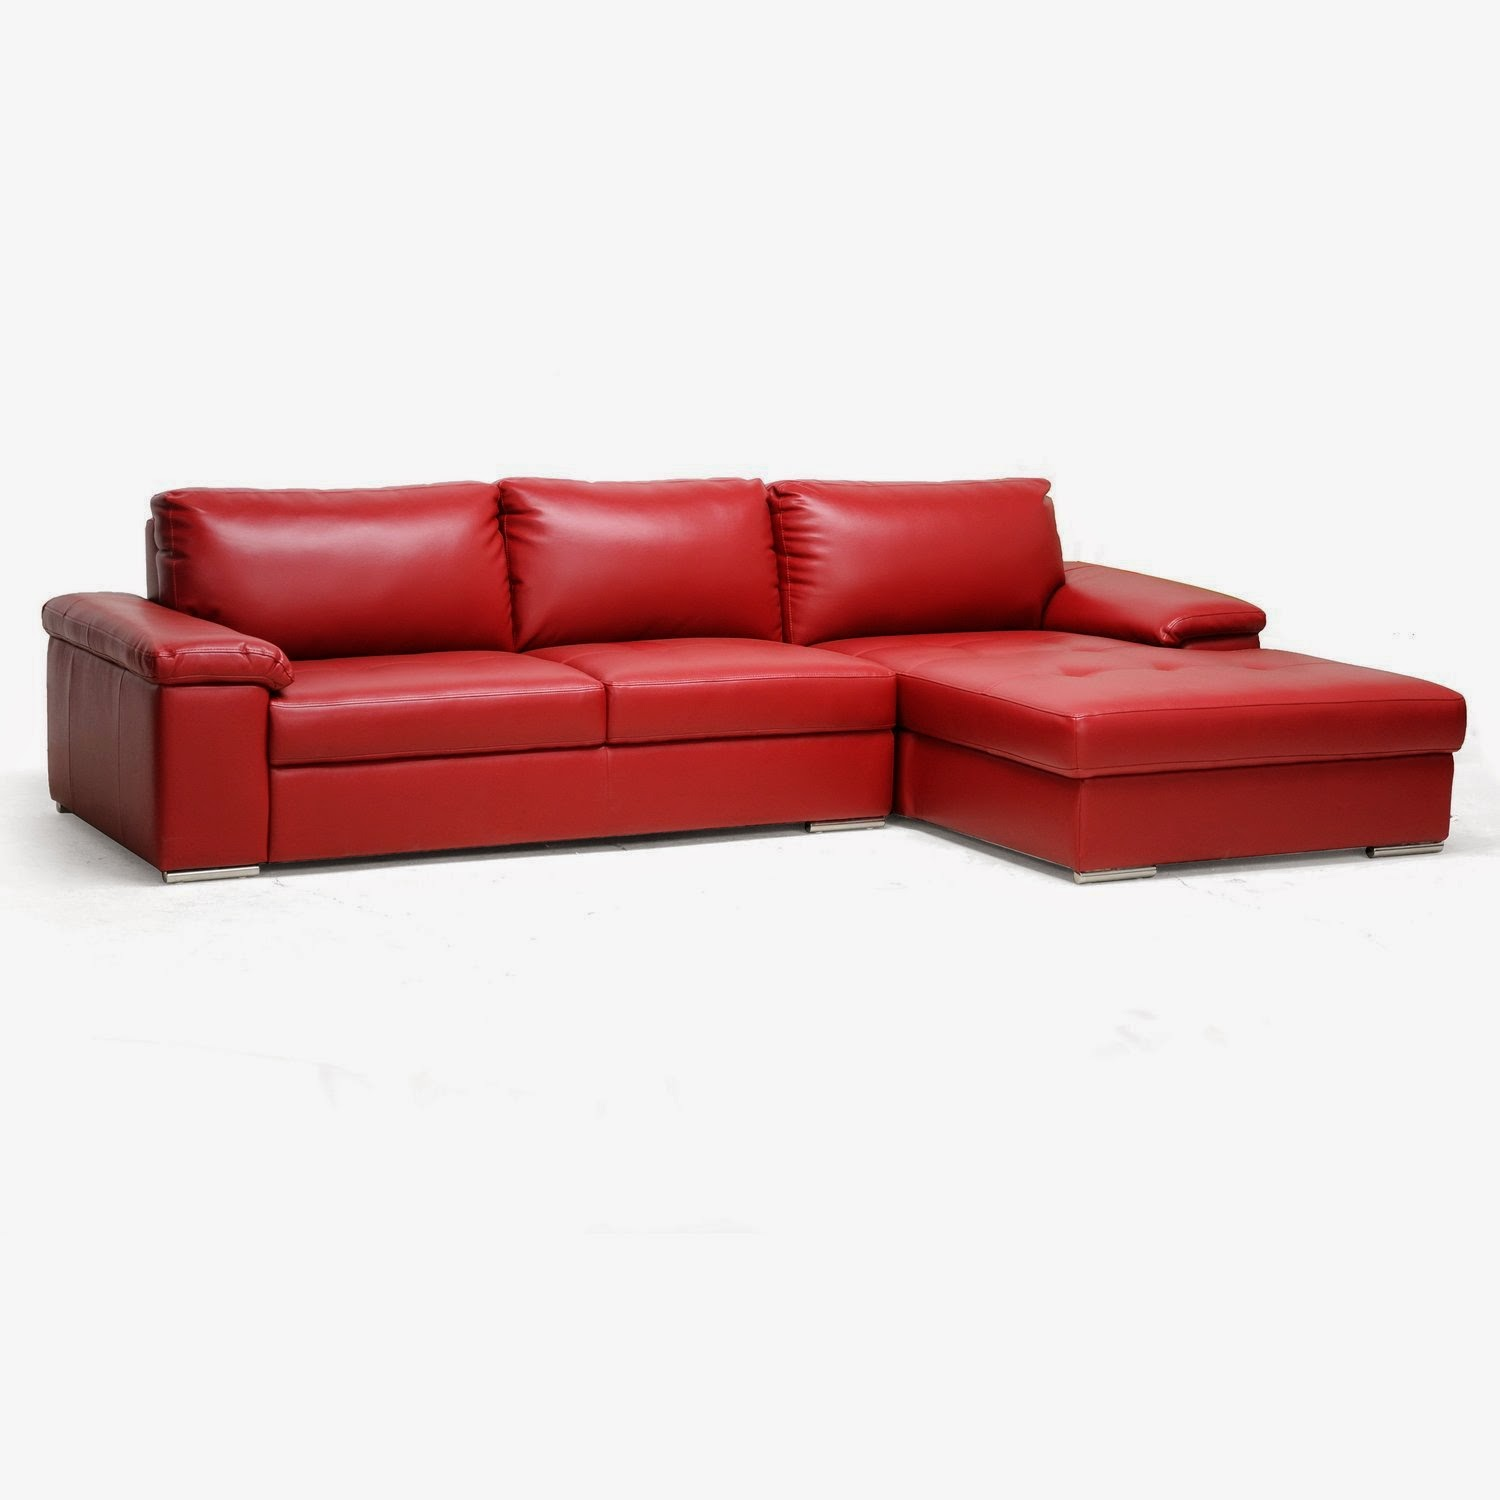 Red couch red leather sectional couch for Sectional furniture